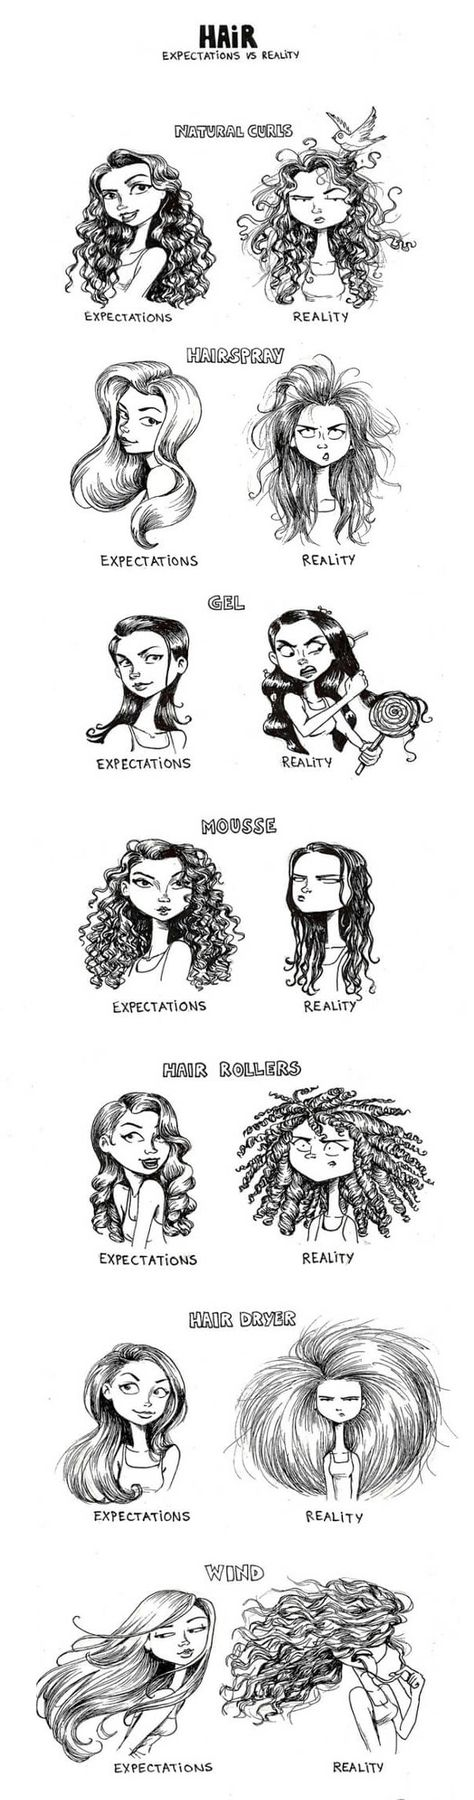 7 Hair Expectations Vs Reality Scenarios… lol this made me laugh, cuz its so true! Curly Hair Styles, Natural Hair Styles, Natural Curls, Natural Skin, Curly Hair Problems, Straight Hair Problems, Expectation Vs Reality, Complicated Relationship, Corte Y Color